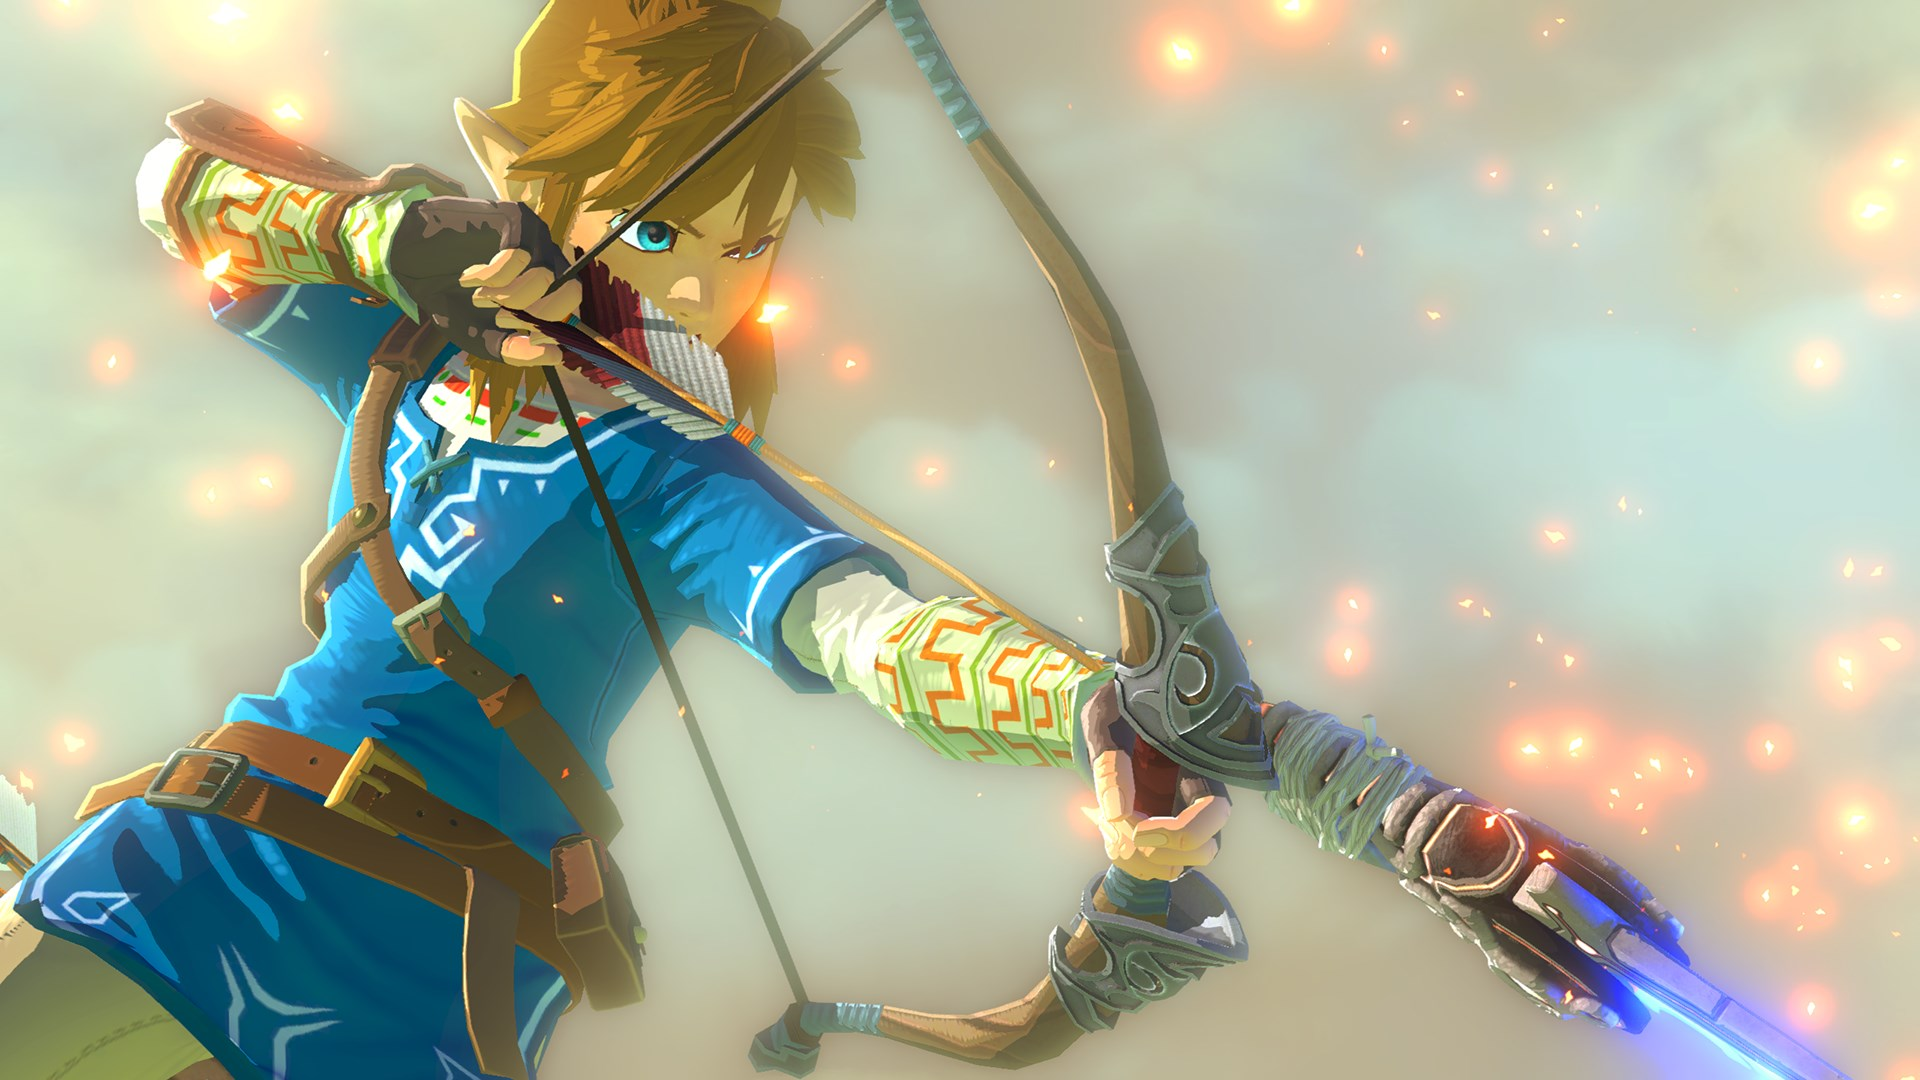 Zelda Wii U to have two extended demos at E3, media asked to set aside 90 minutes